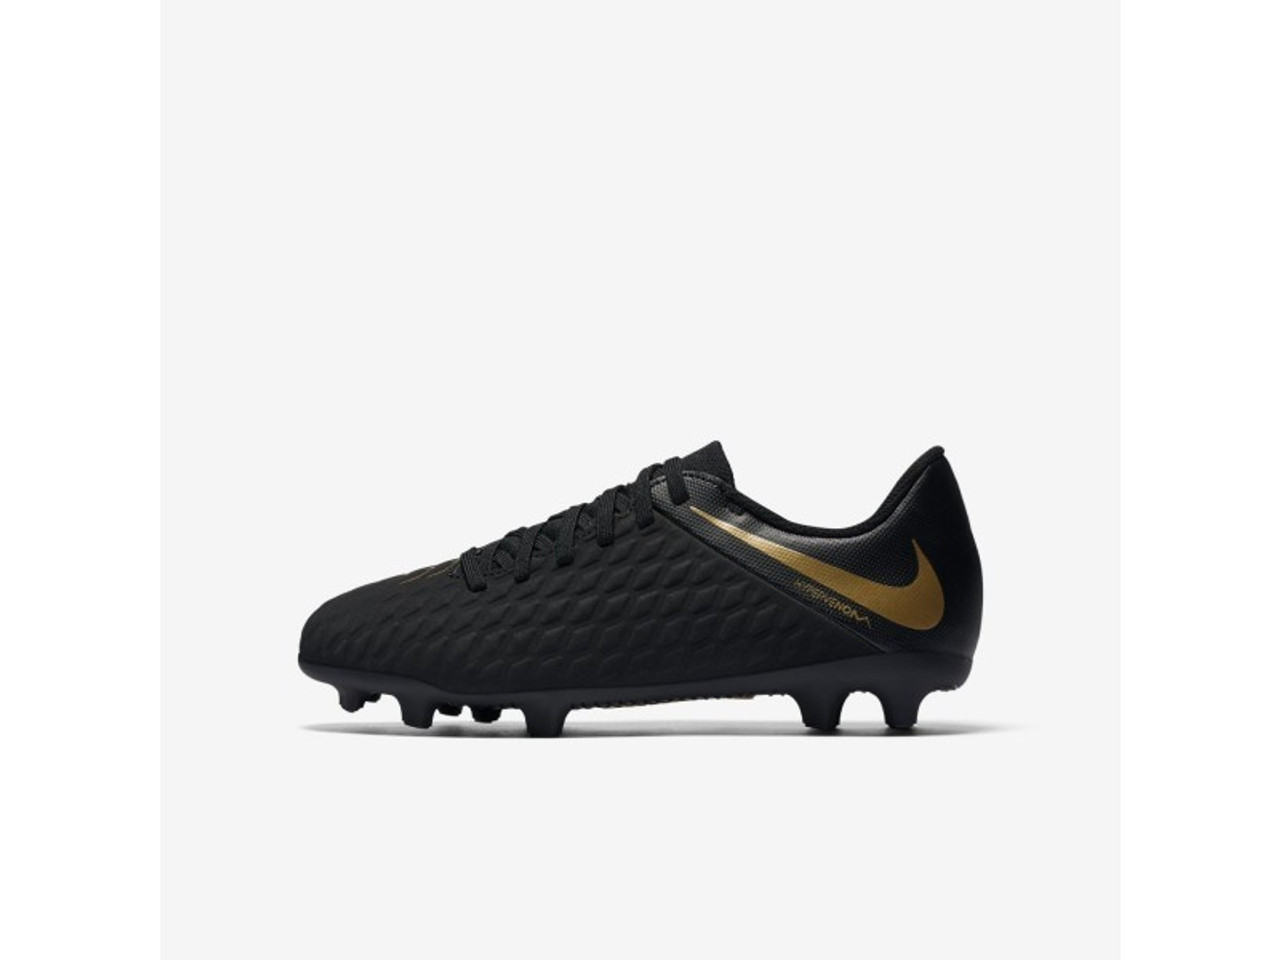 online store reputable site good texture NIKE JR PHANTOM 3 CLUB FG BLACK/GOLD